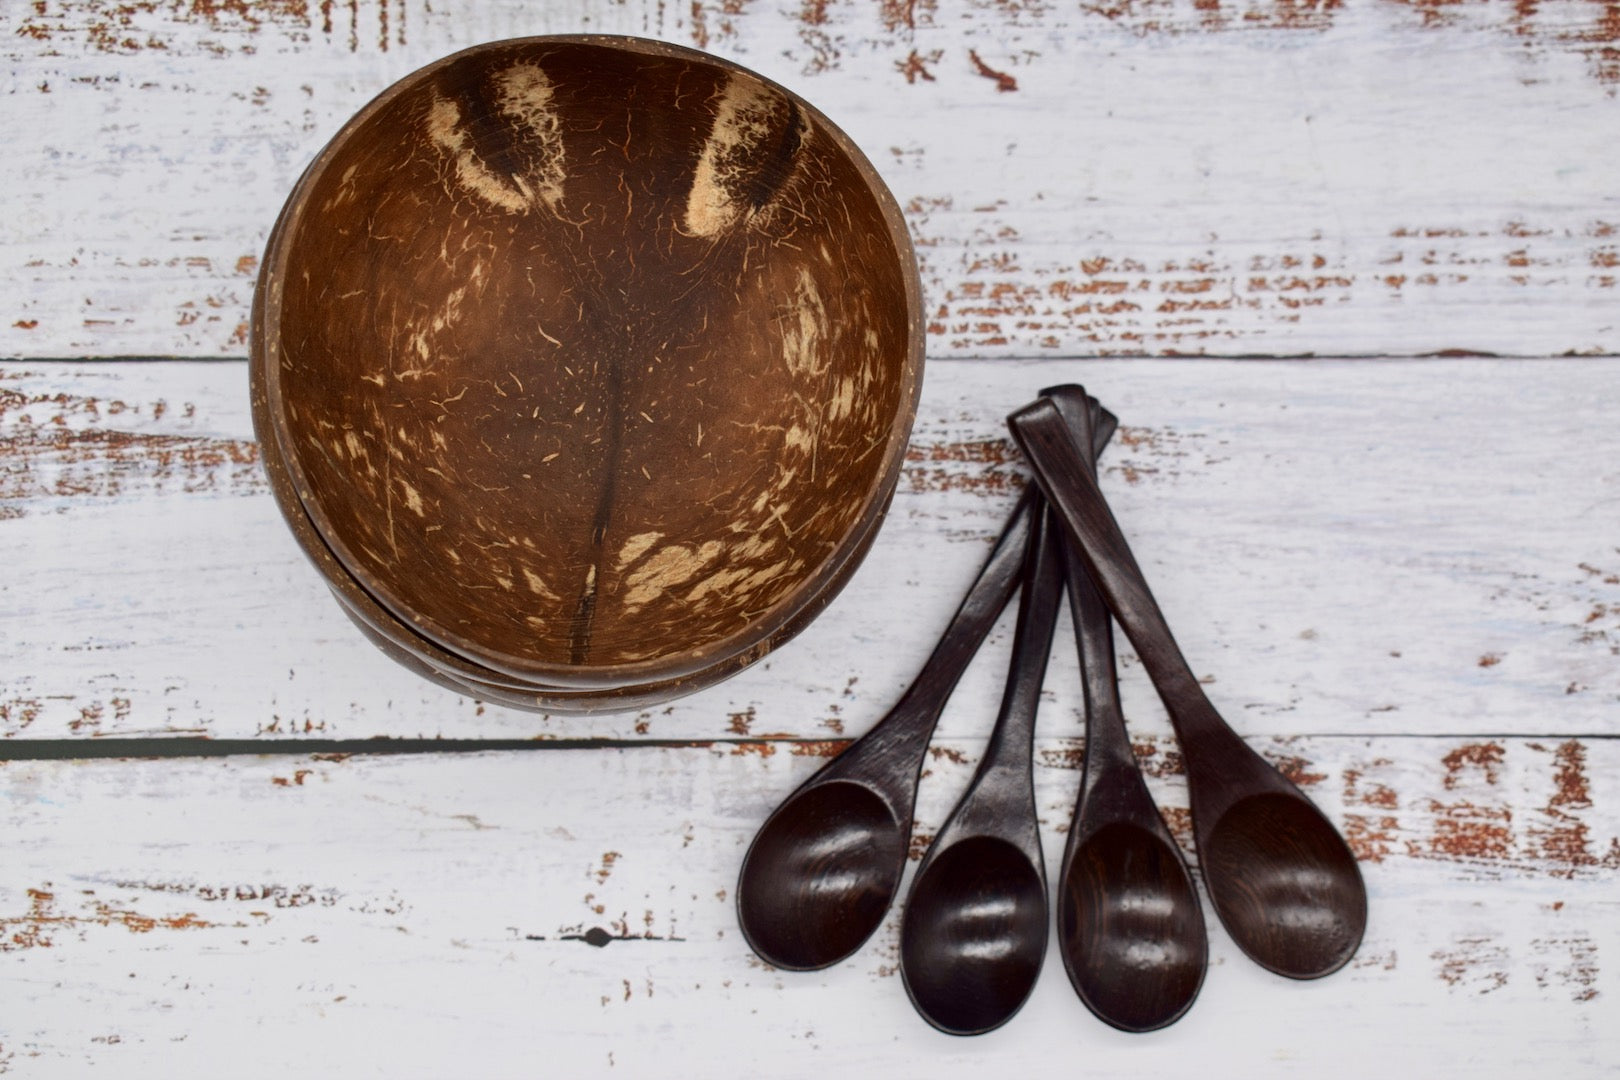 Coconut bowl and spoons